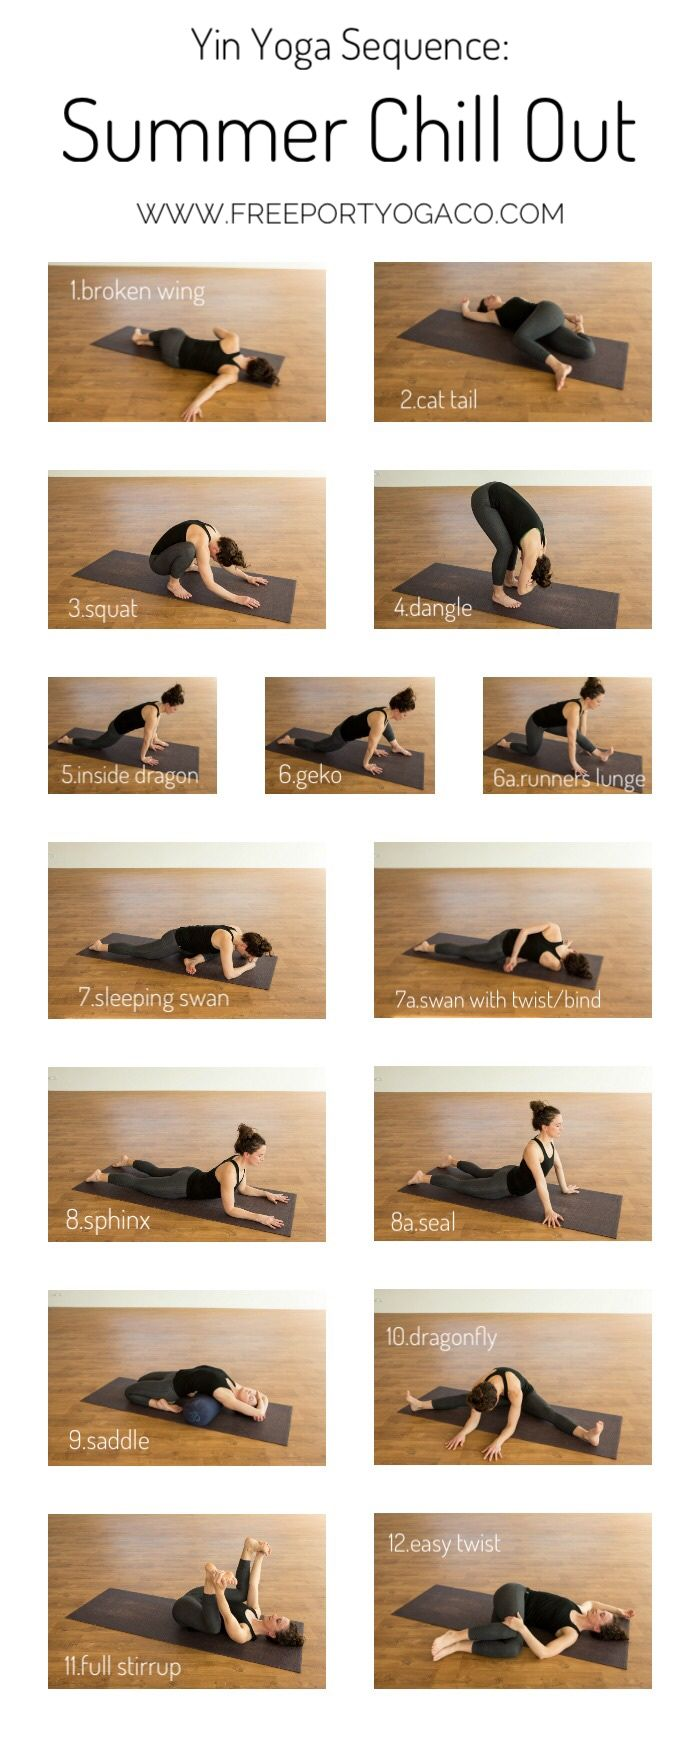 Chill Out With This Yin Yoga Sequence Specifically Designed For The Summertime Heat